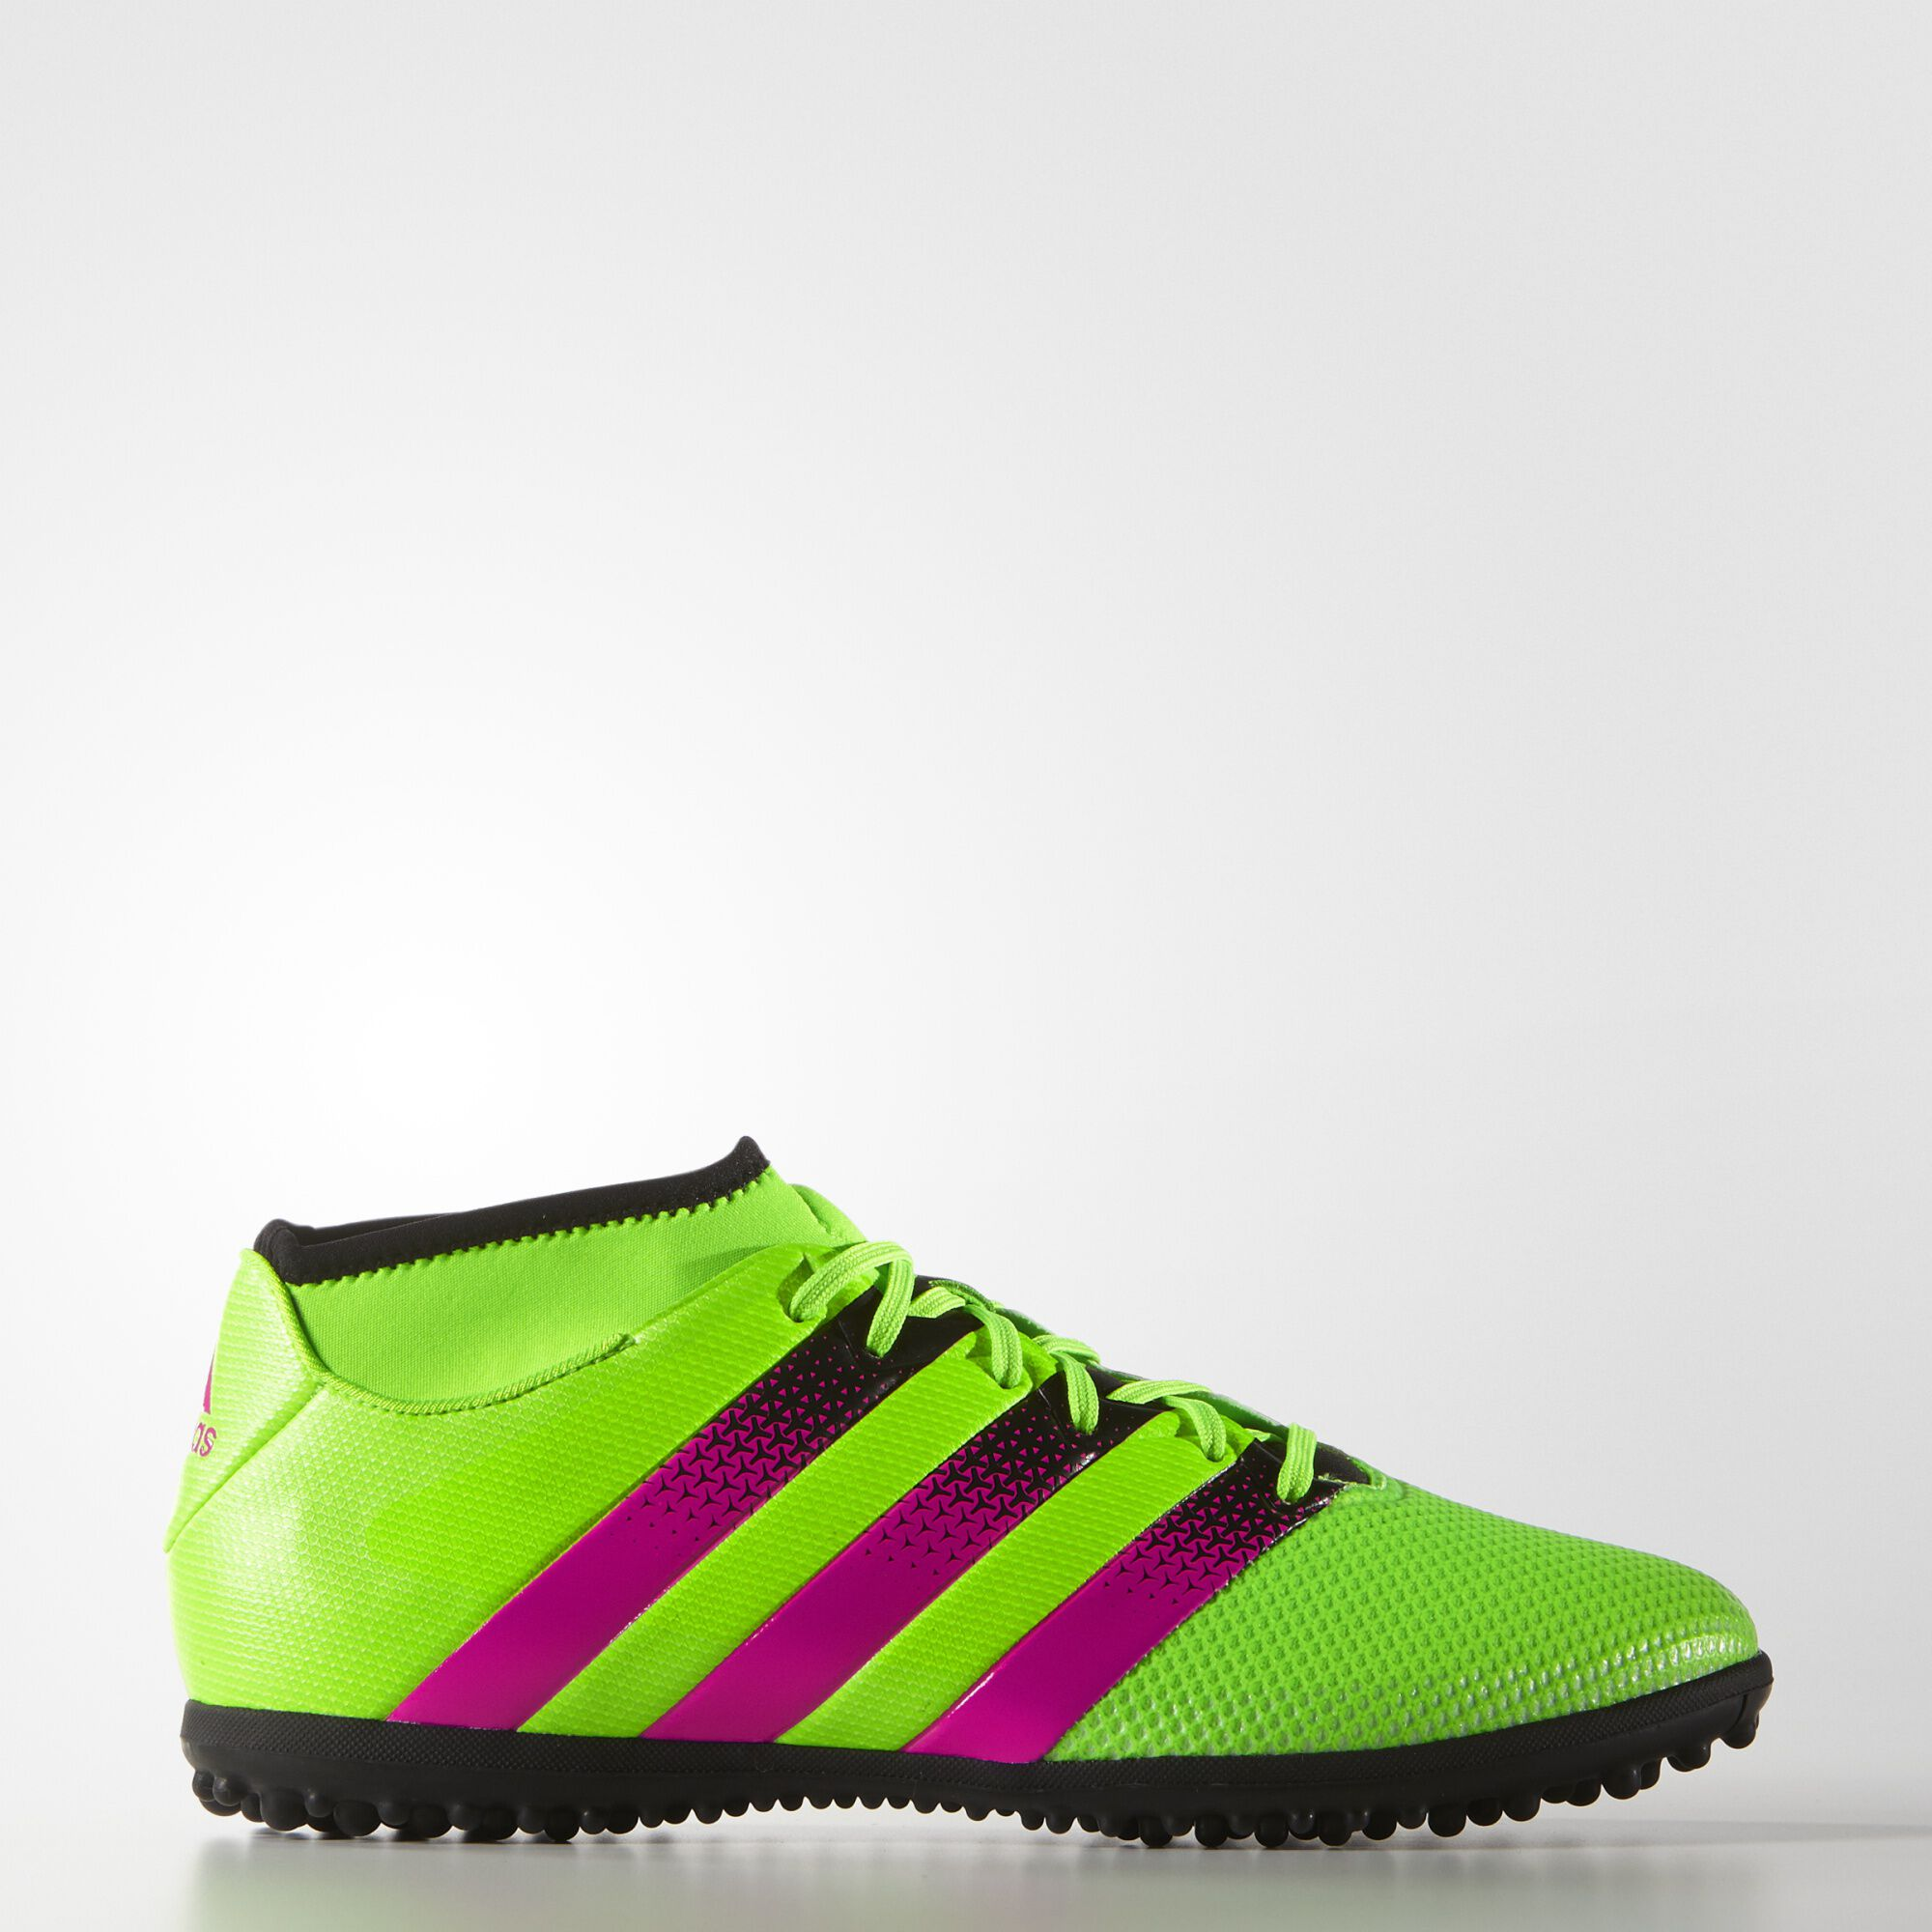 adidas shoes discount offer